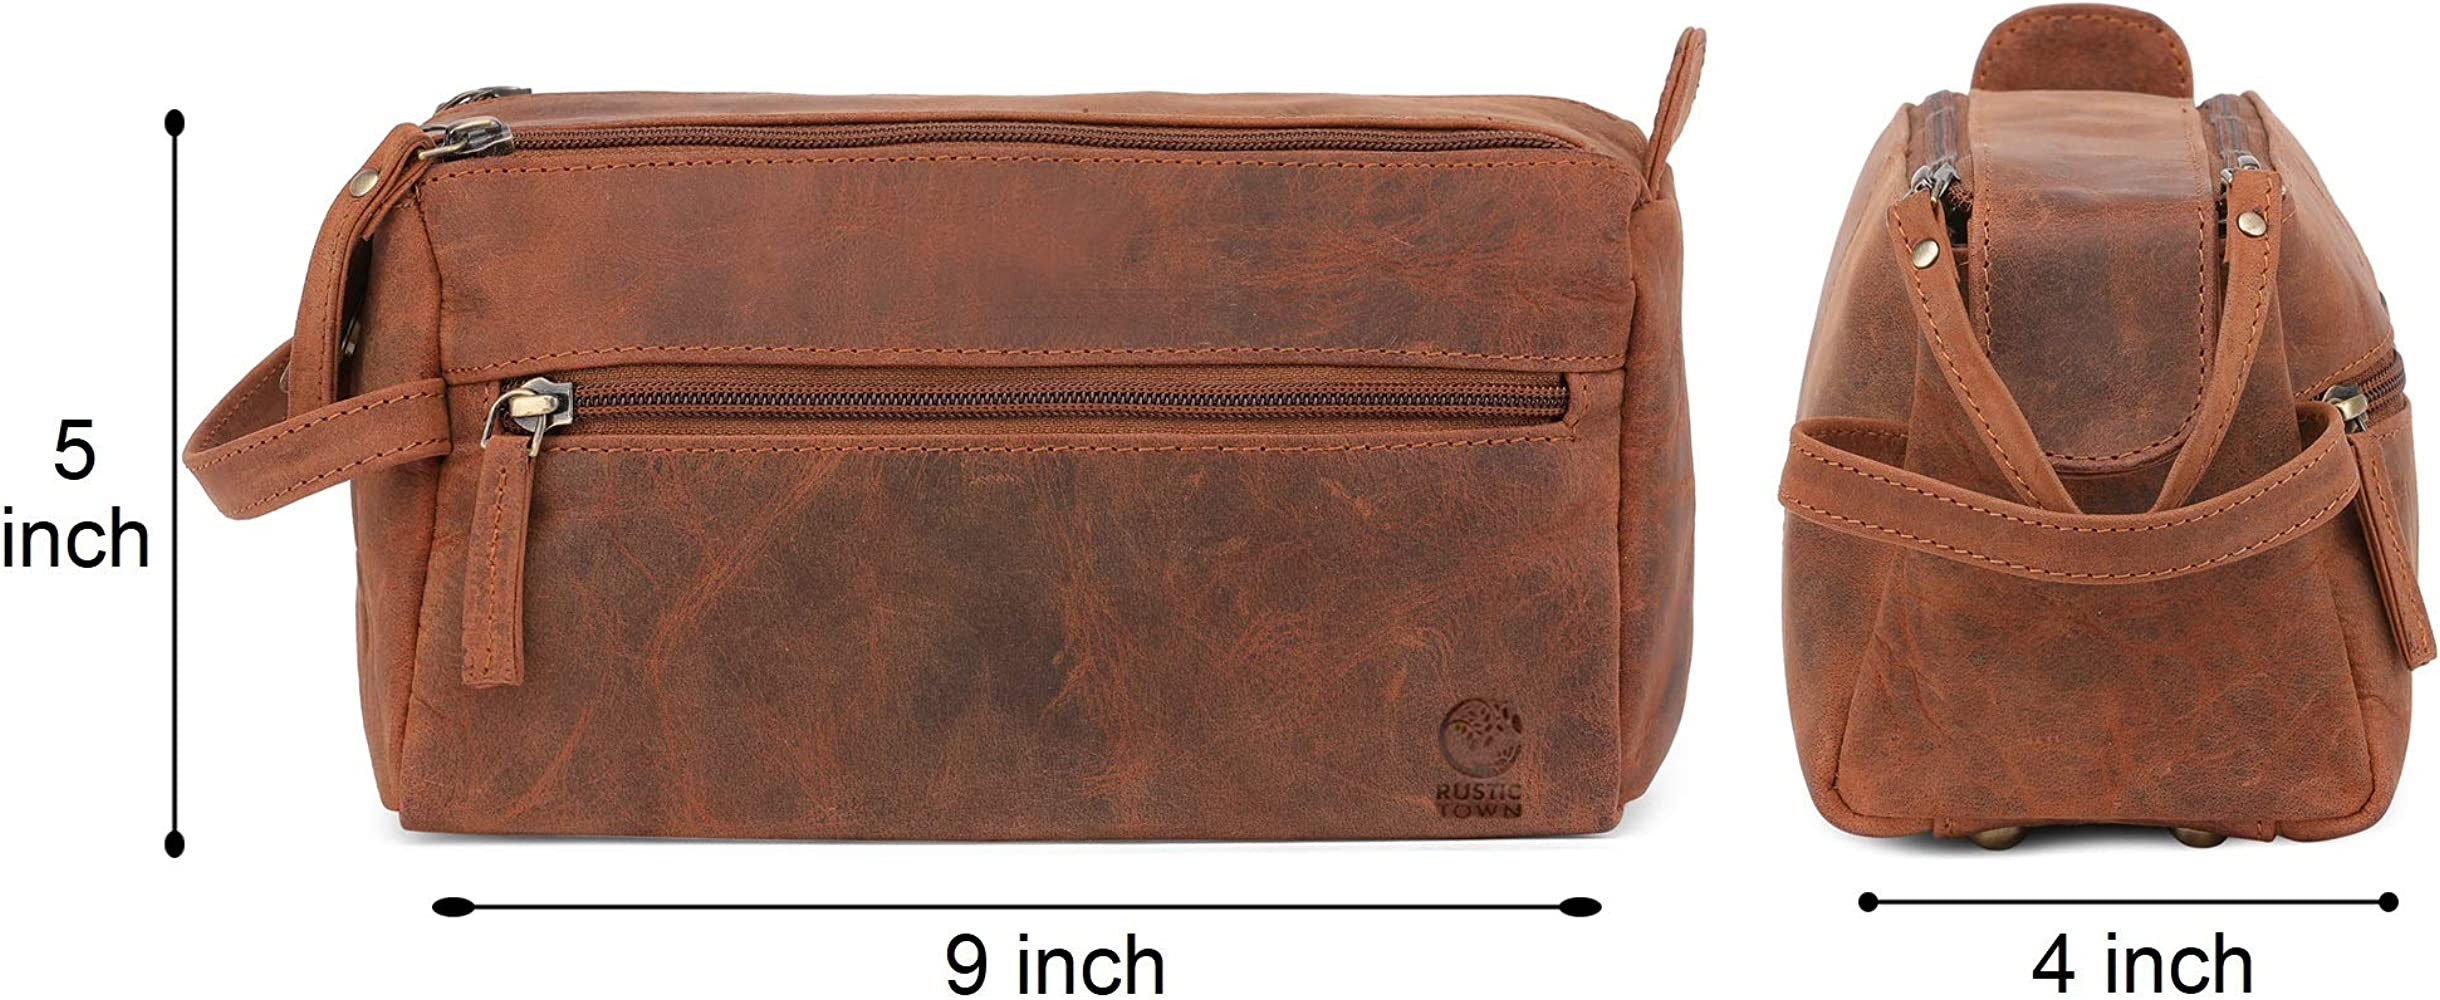 83bfb766ff31 Leather Toiletry Bag for Men - Hygiene Organizer Travel Dopp Kit By Rustic  Town